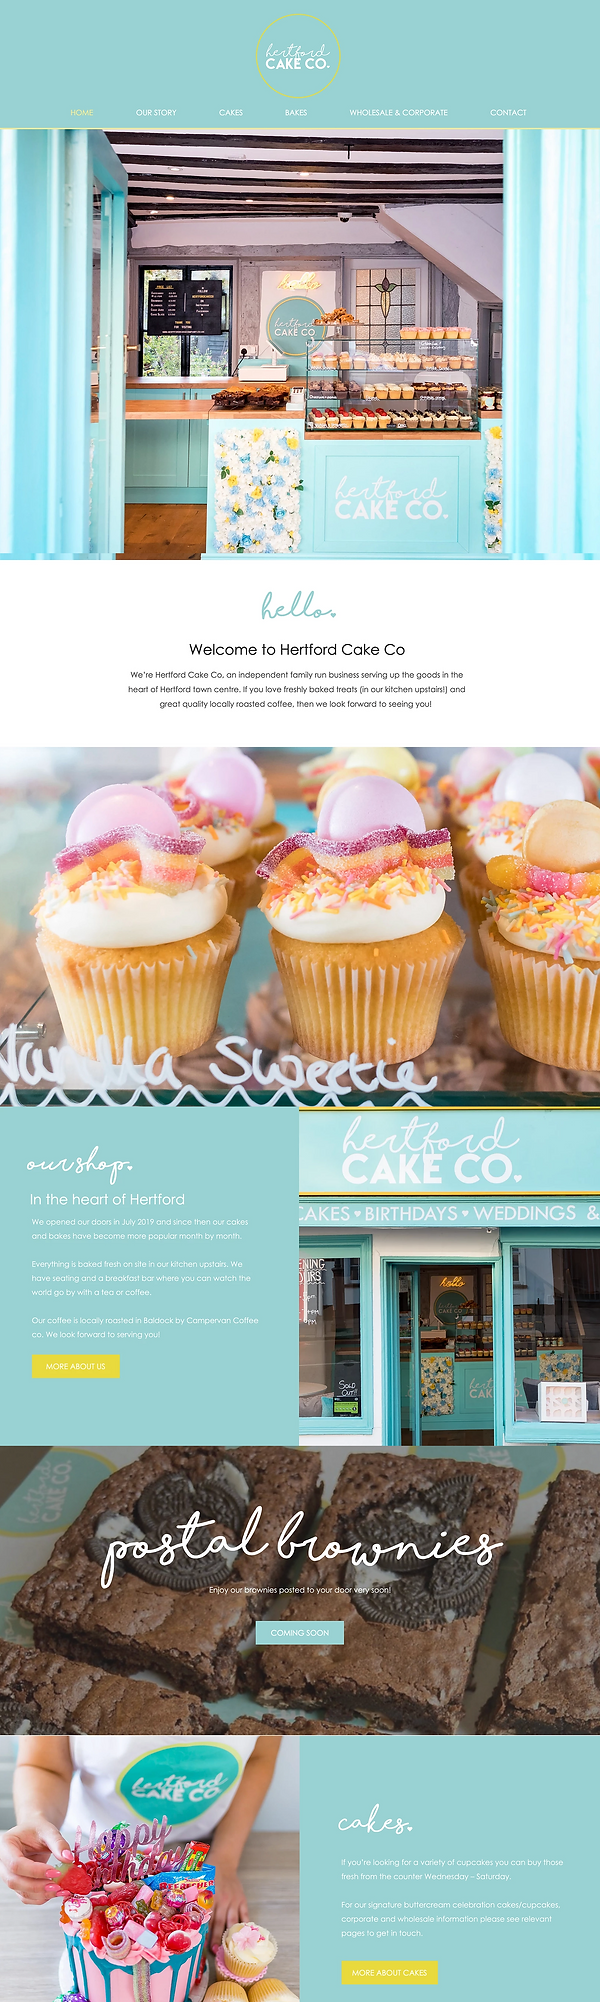 Cake Shop Website | Website Design UK